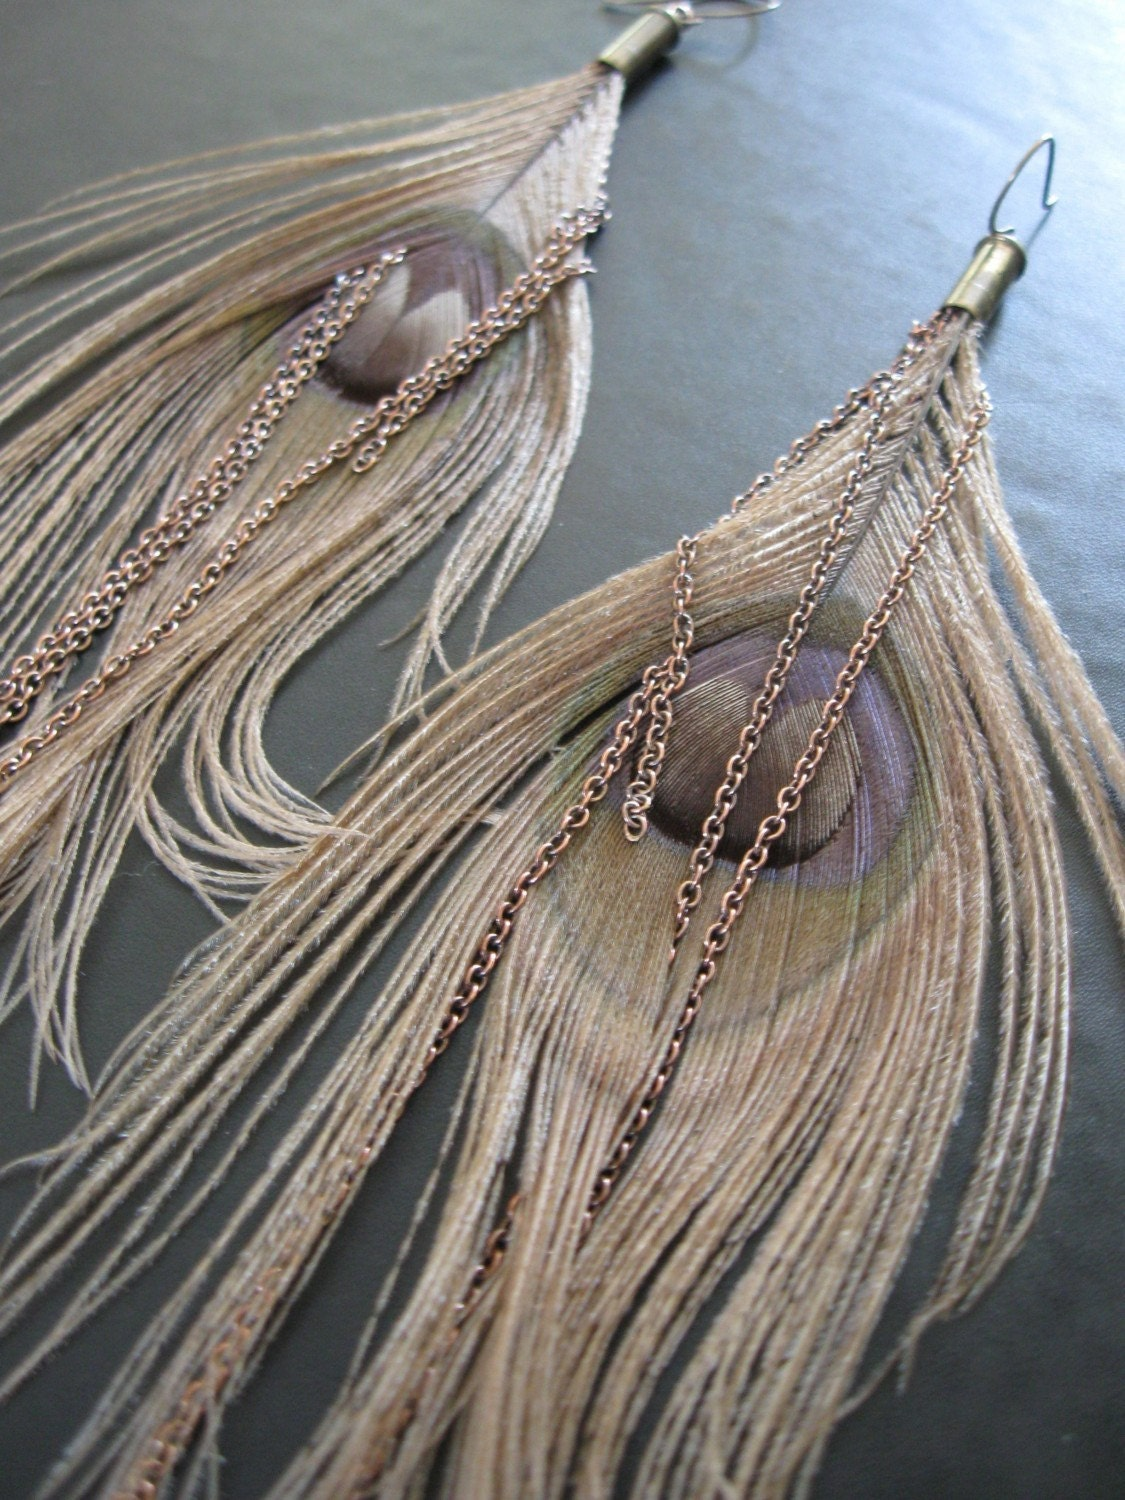 Somnambulism - Bleached Peacock Feather Brass Chain Recycled Bullet Casing Earrings